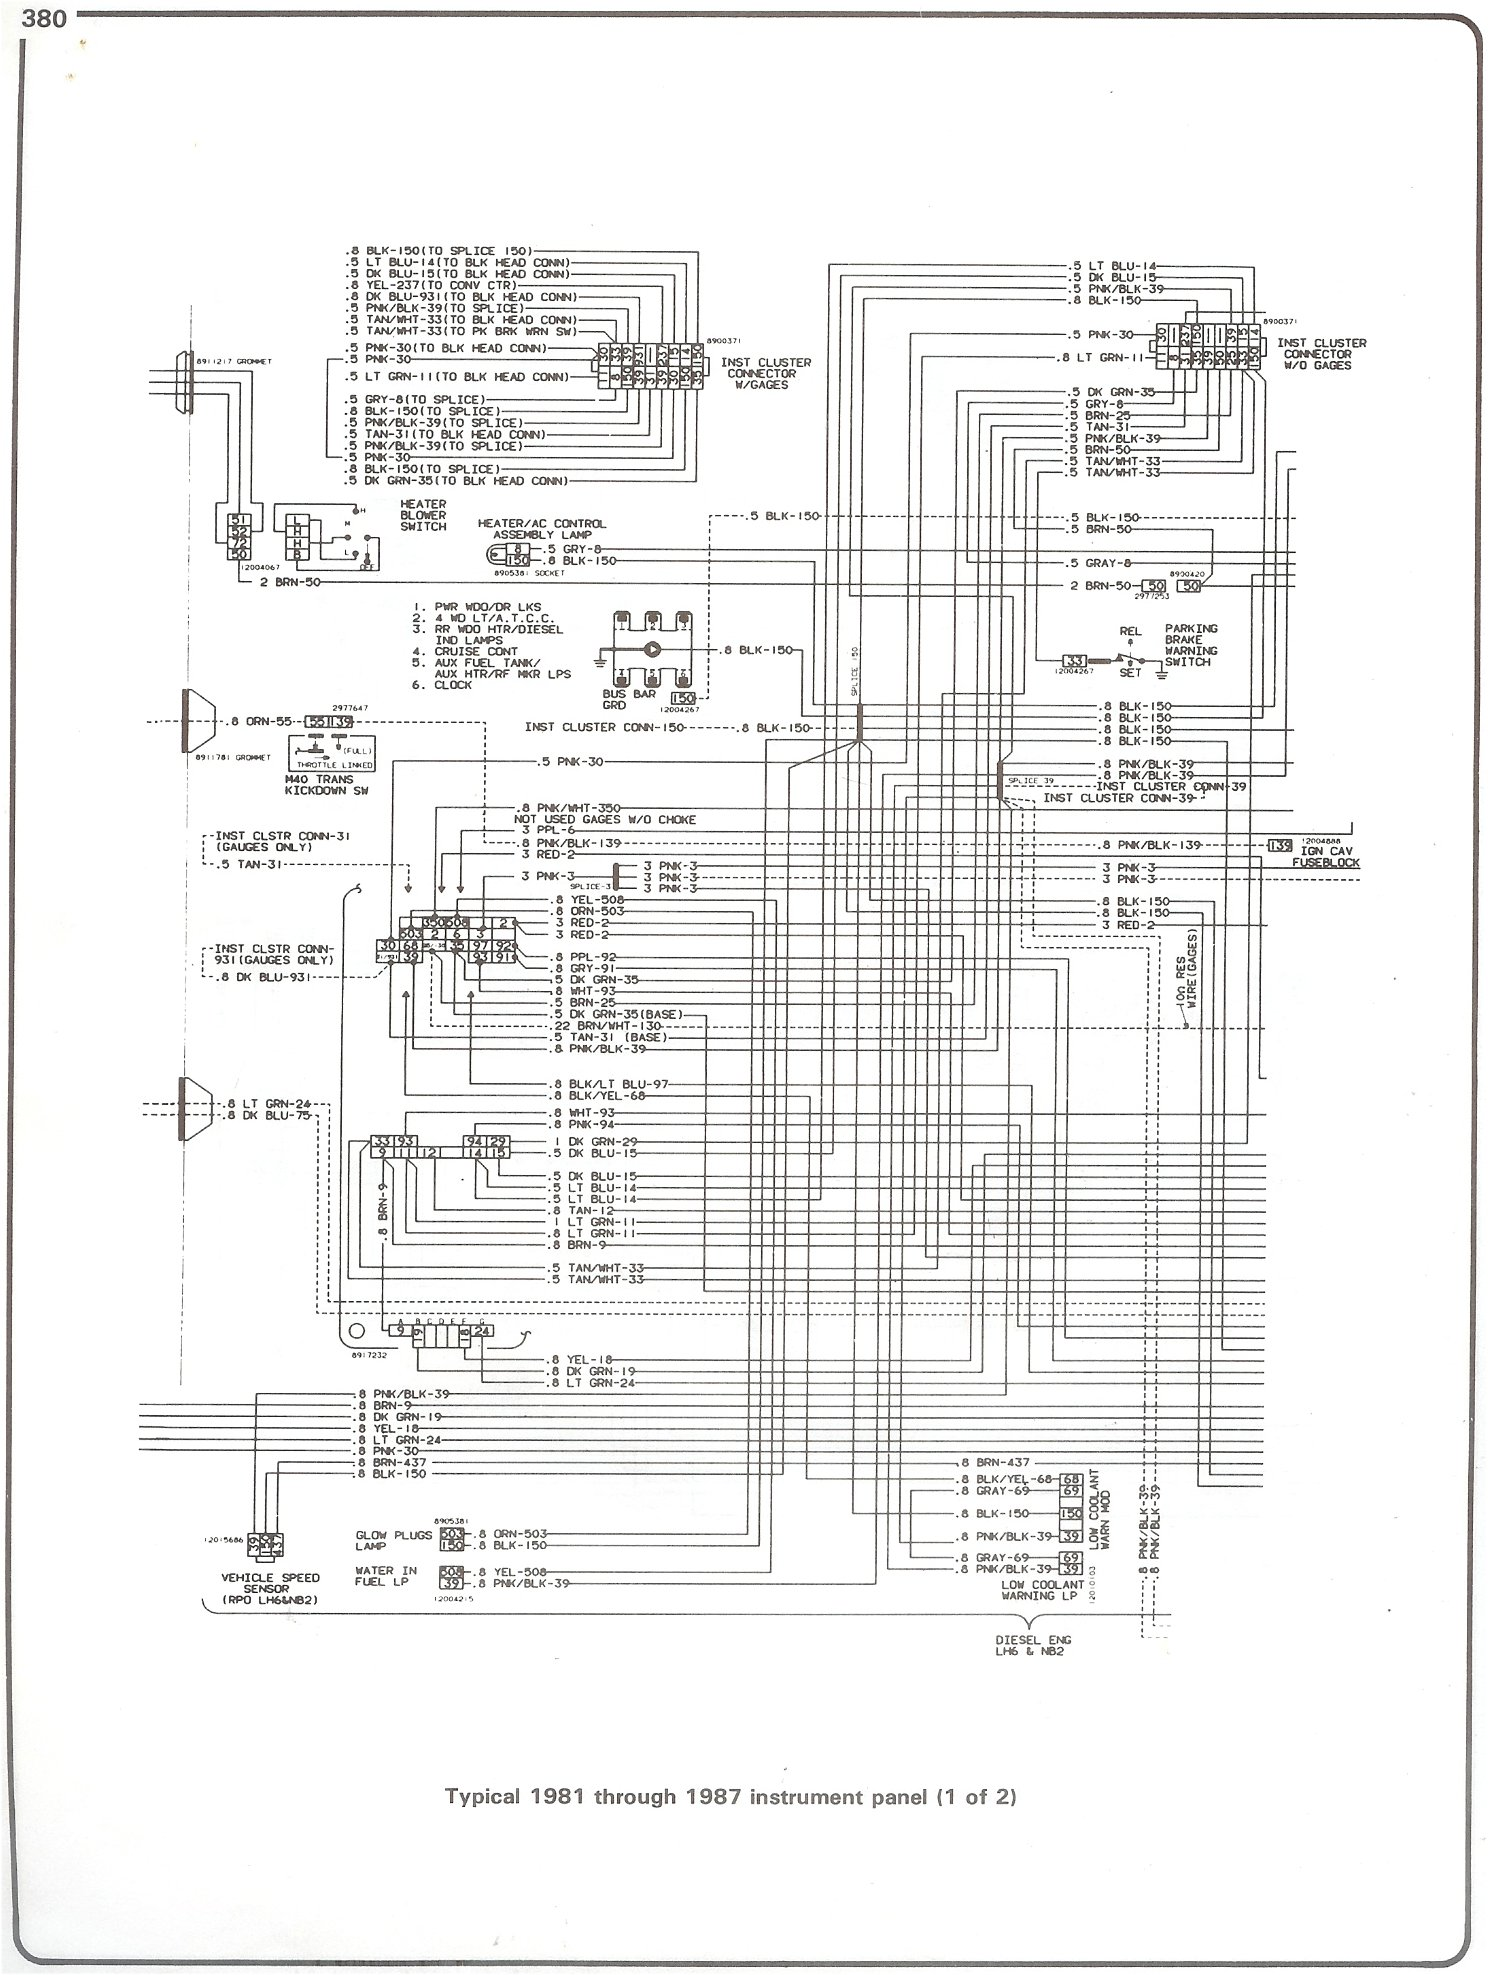 81 87_instrument_pg1 1984 chevy c10 wiring diagram 68 chevy c10 wiring diagram \u2022 wiring Keystone EPI2 Manual at readyjetset.co